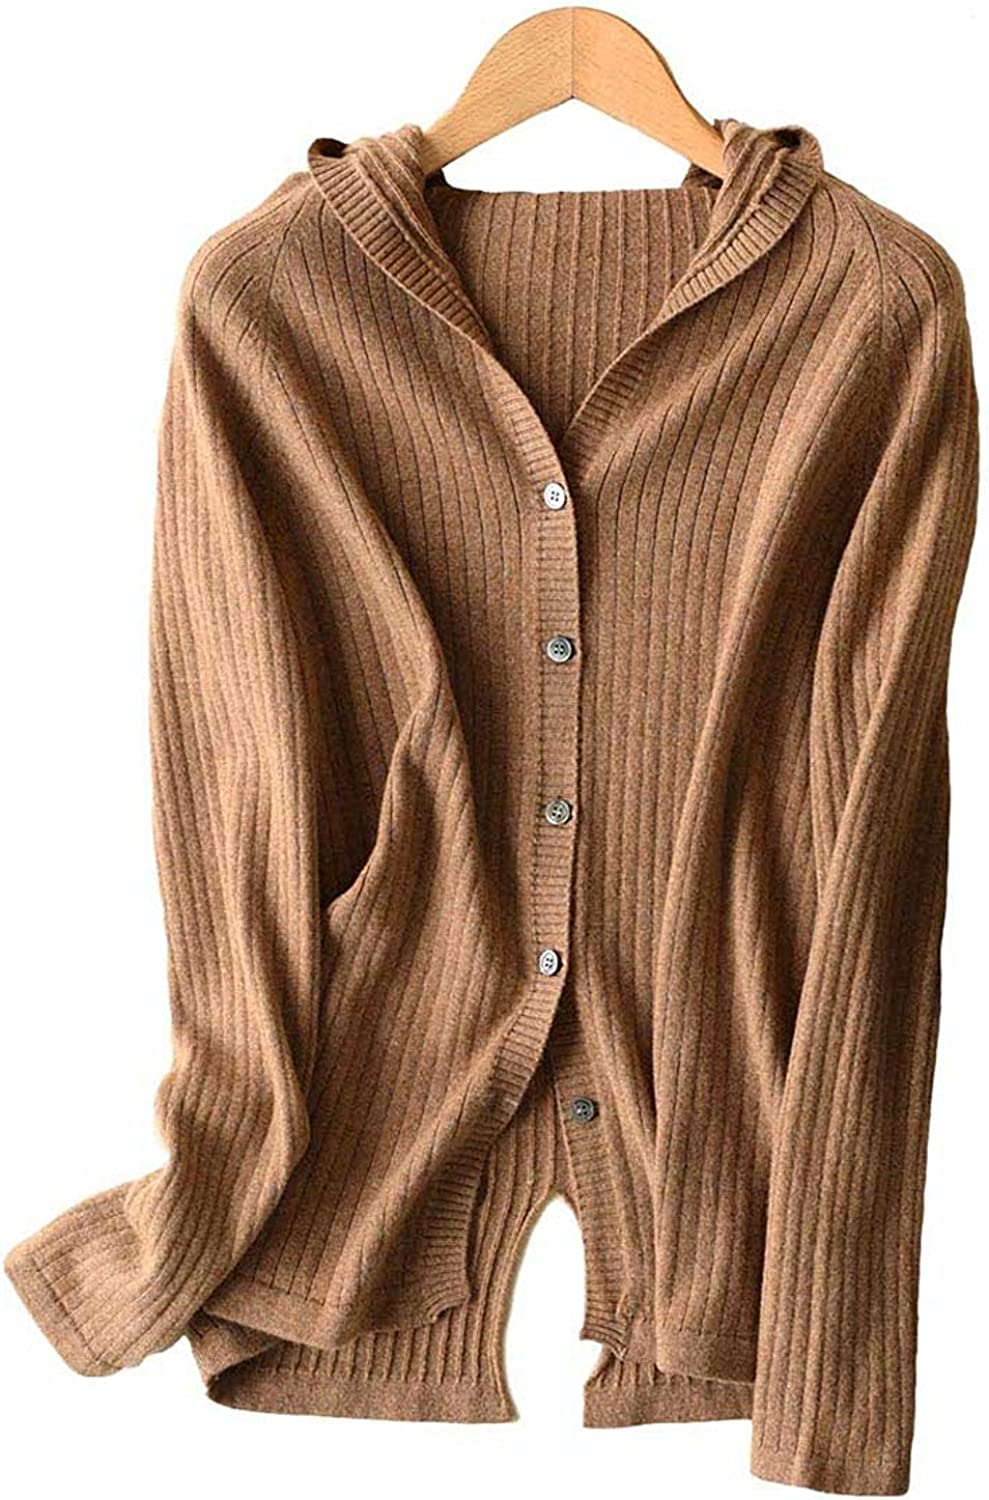 Womens hoddie cardigan long sleeve cashmere Wool Sweater Jacket